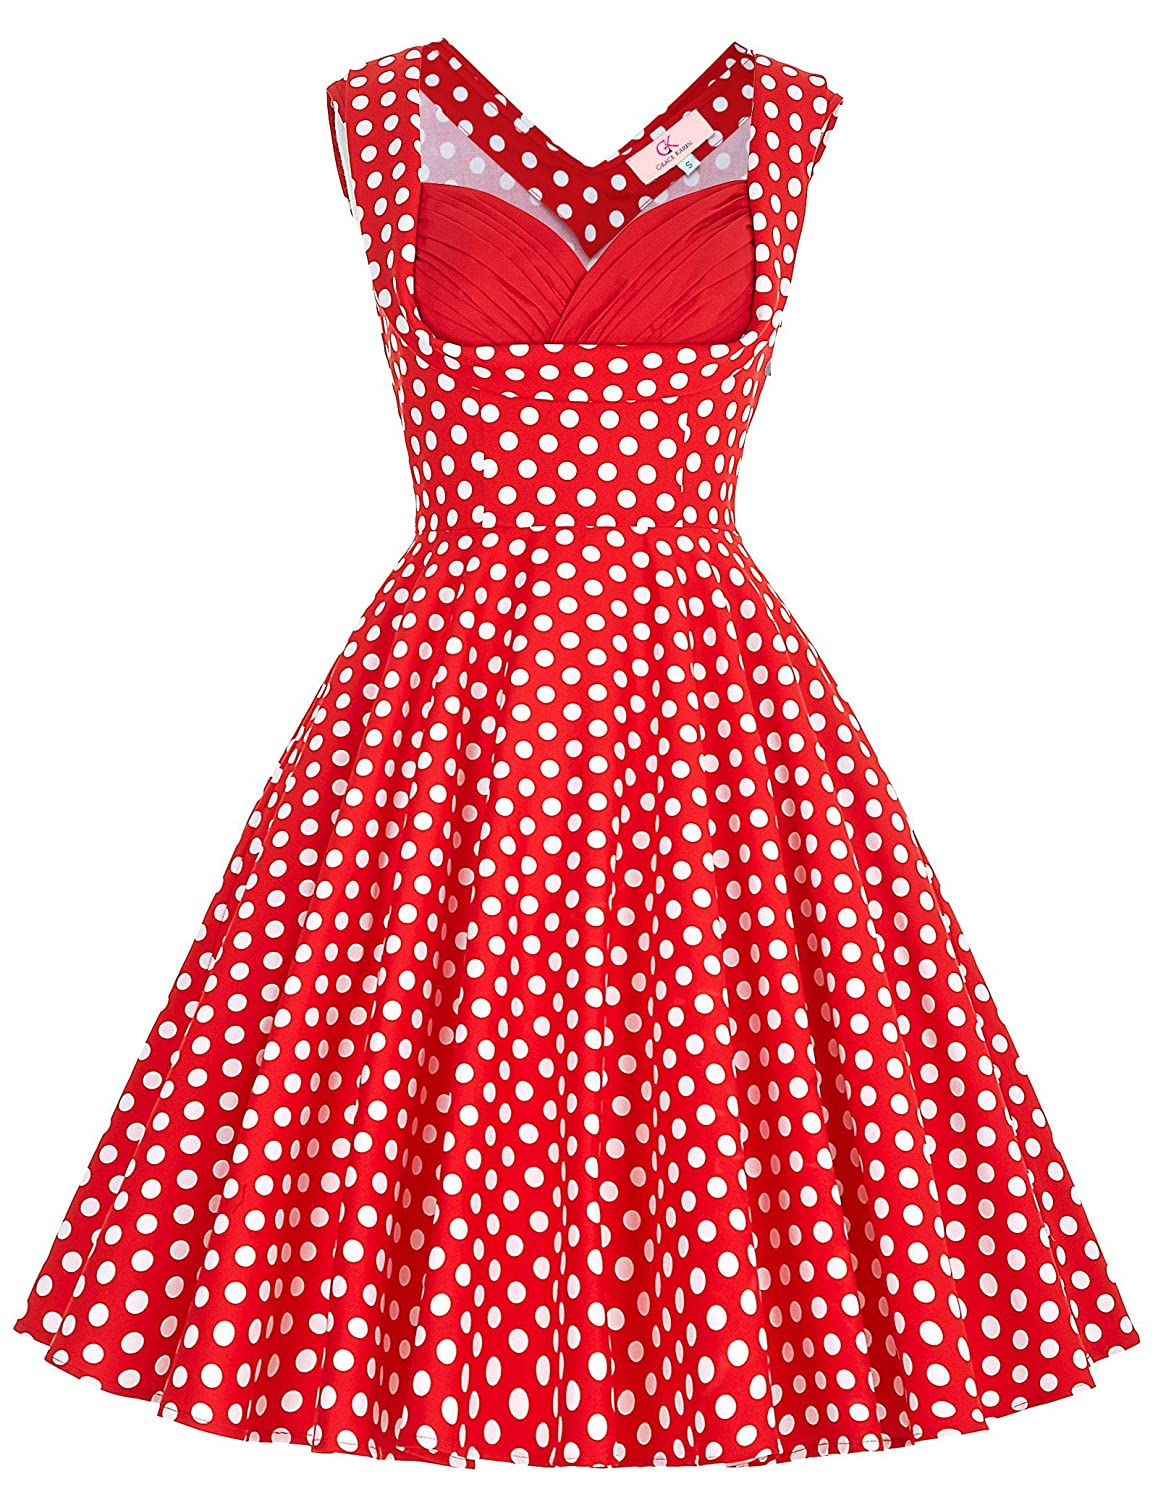 Rockabilly Dresses | Rockabilly Clothing | Viva Las Vegas Grace Karin Womens Vintage 1950s Floral Cut Out Casual Party Dresses $15.99 AT vintagedancer.com